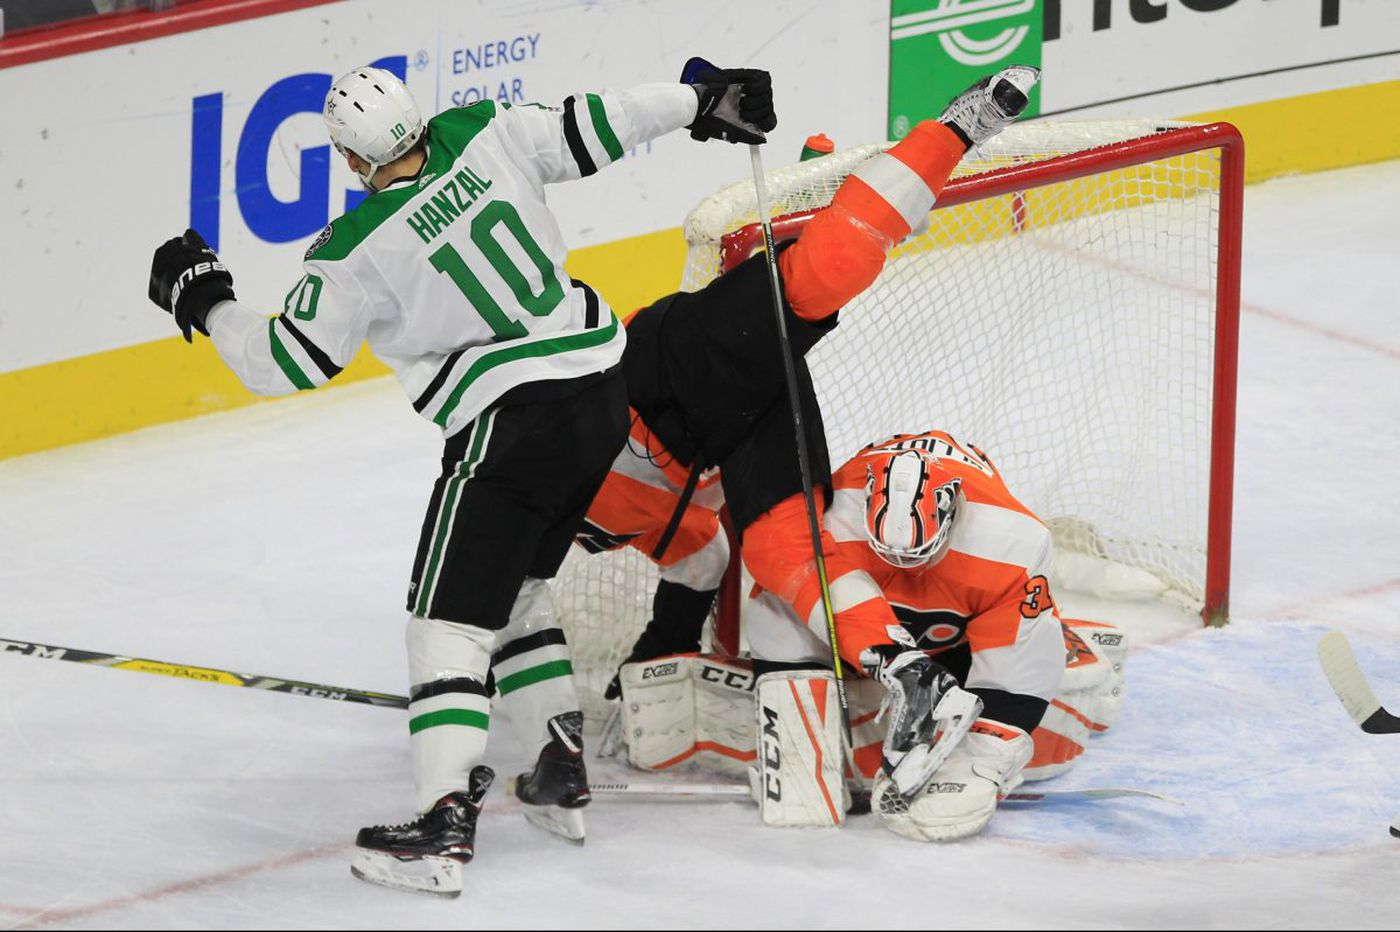 Shayne Gostisbehere's goal gives Flyers overtime win over Dallas Stars